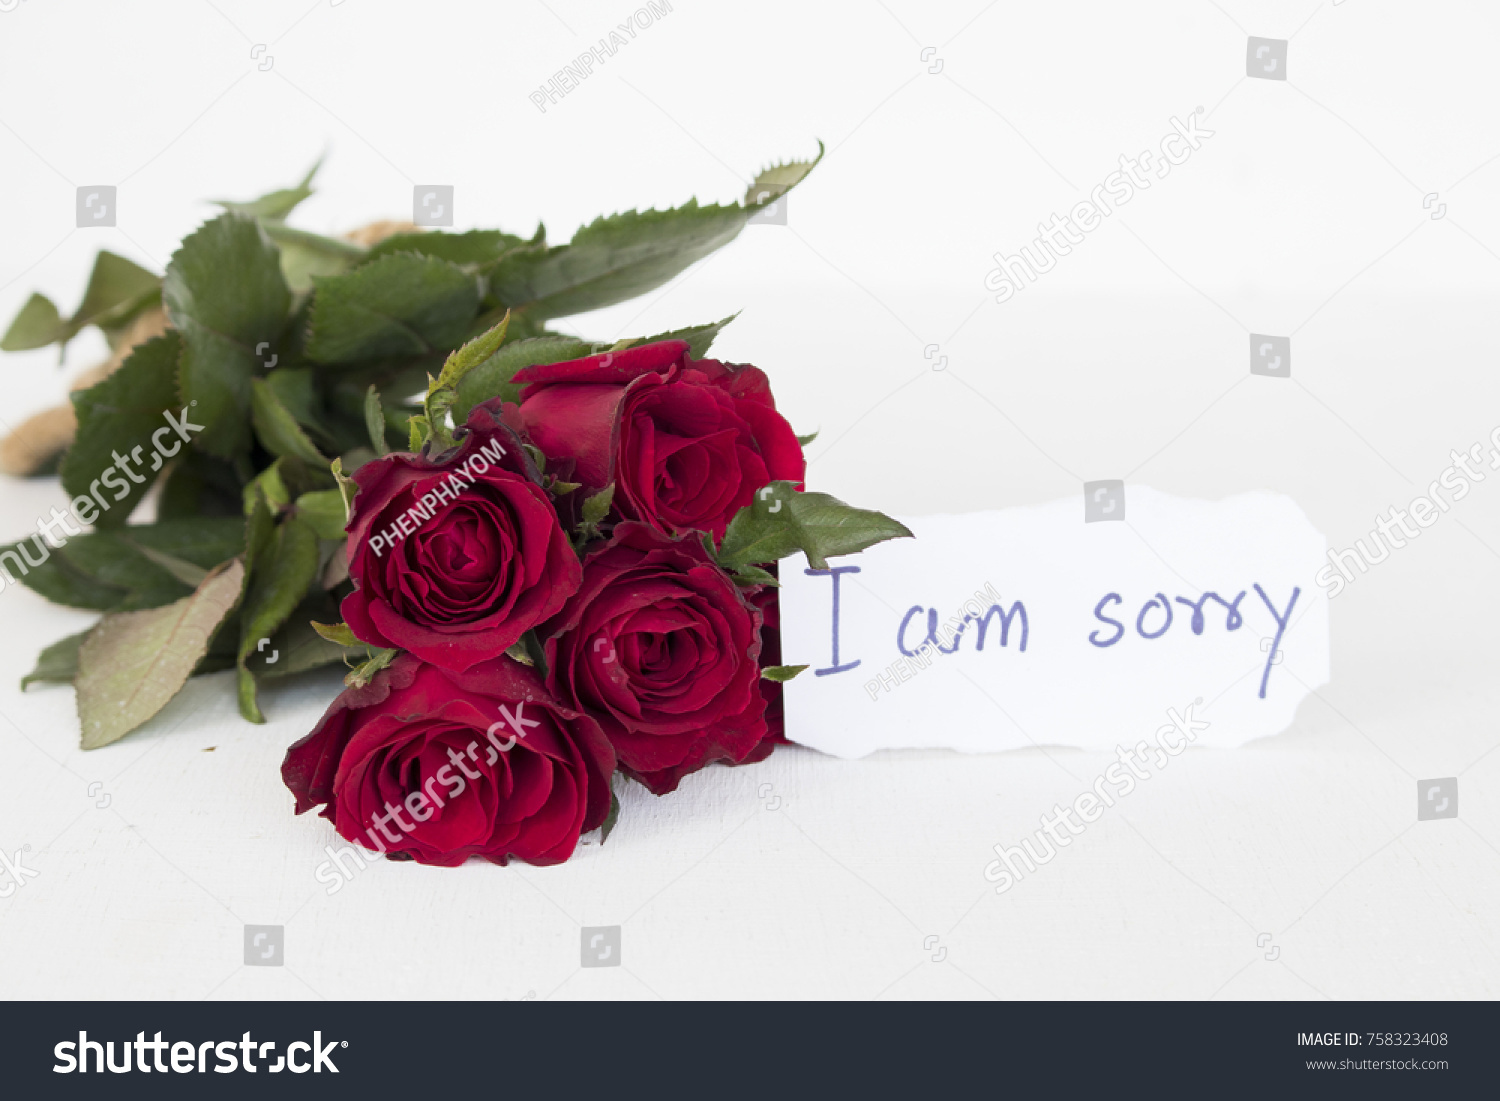 Sorry Message Card Bundle Red Rose Stock Photo (Edit Now